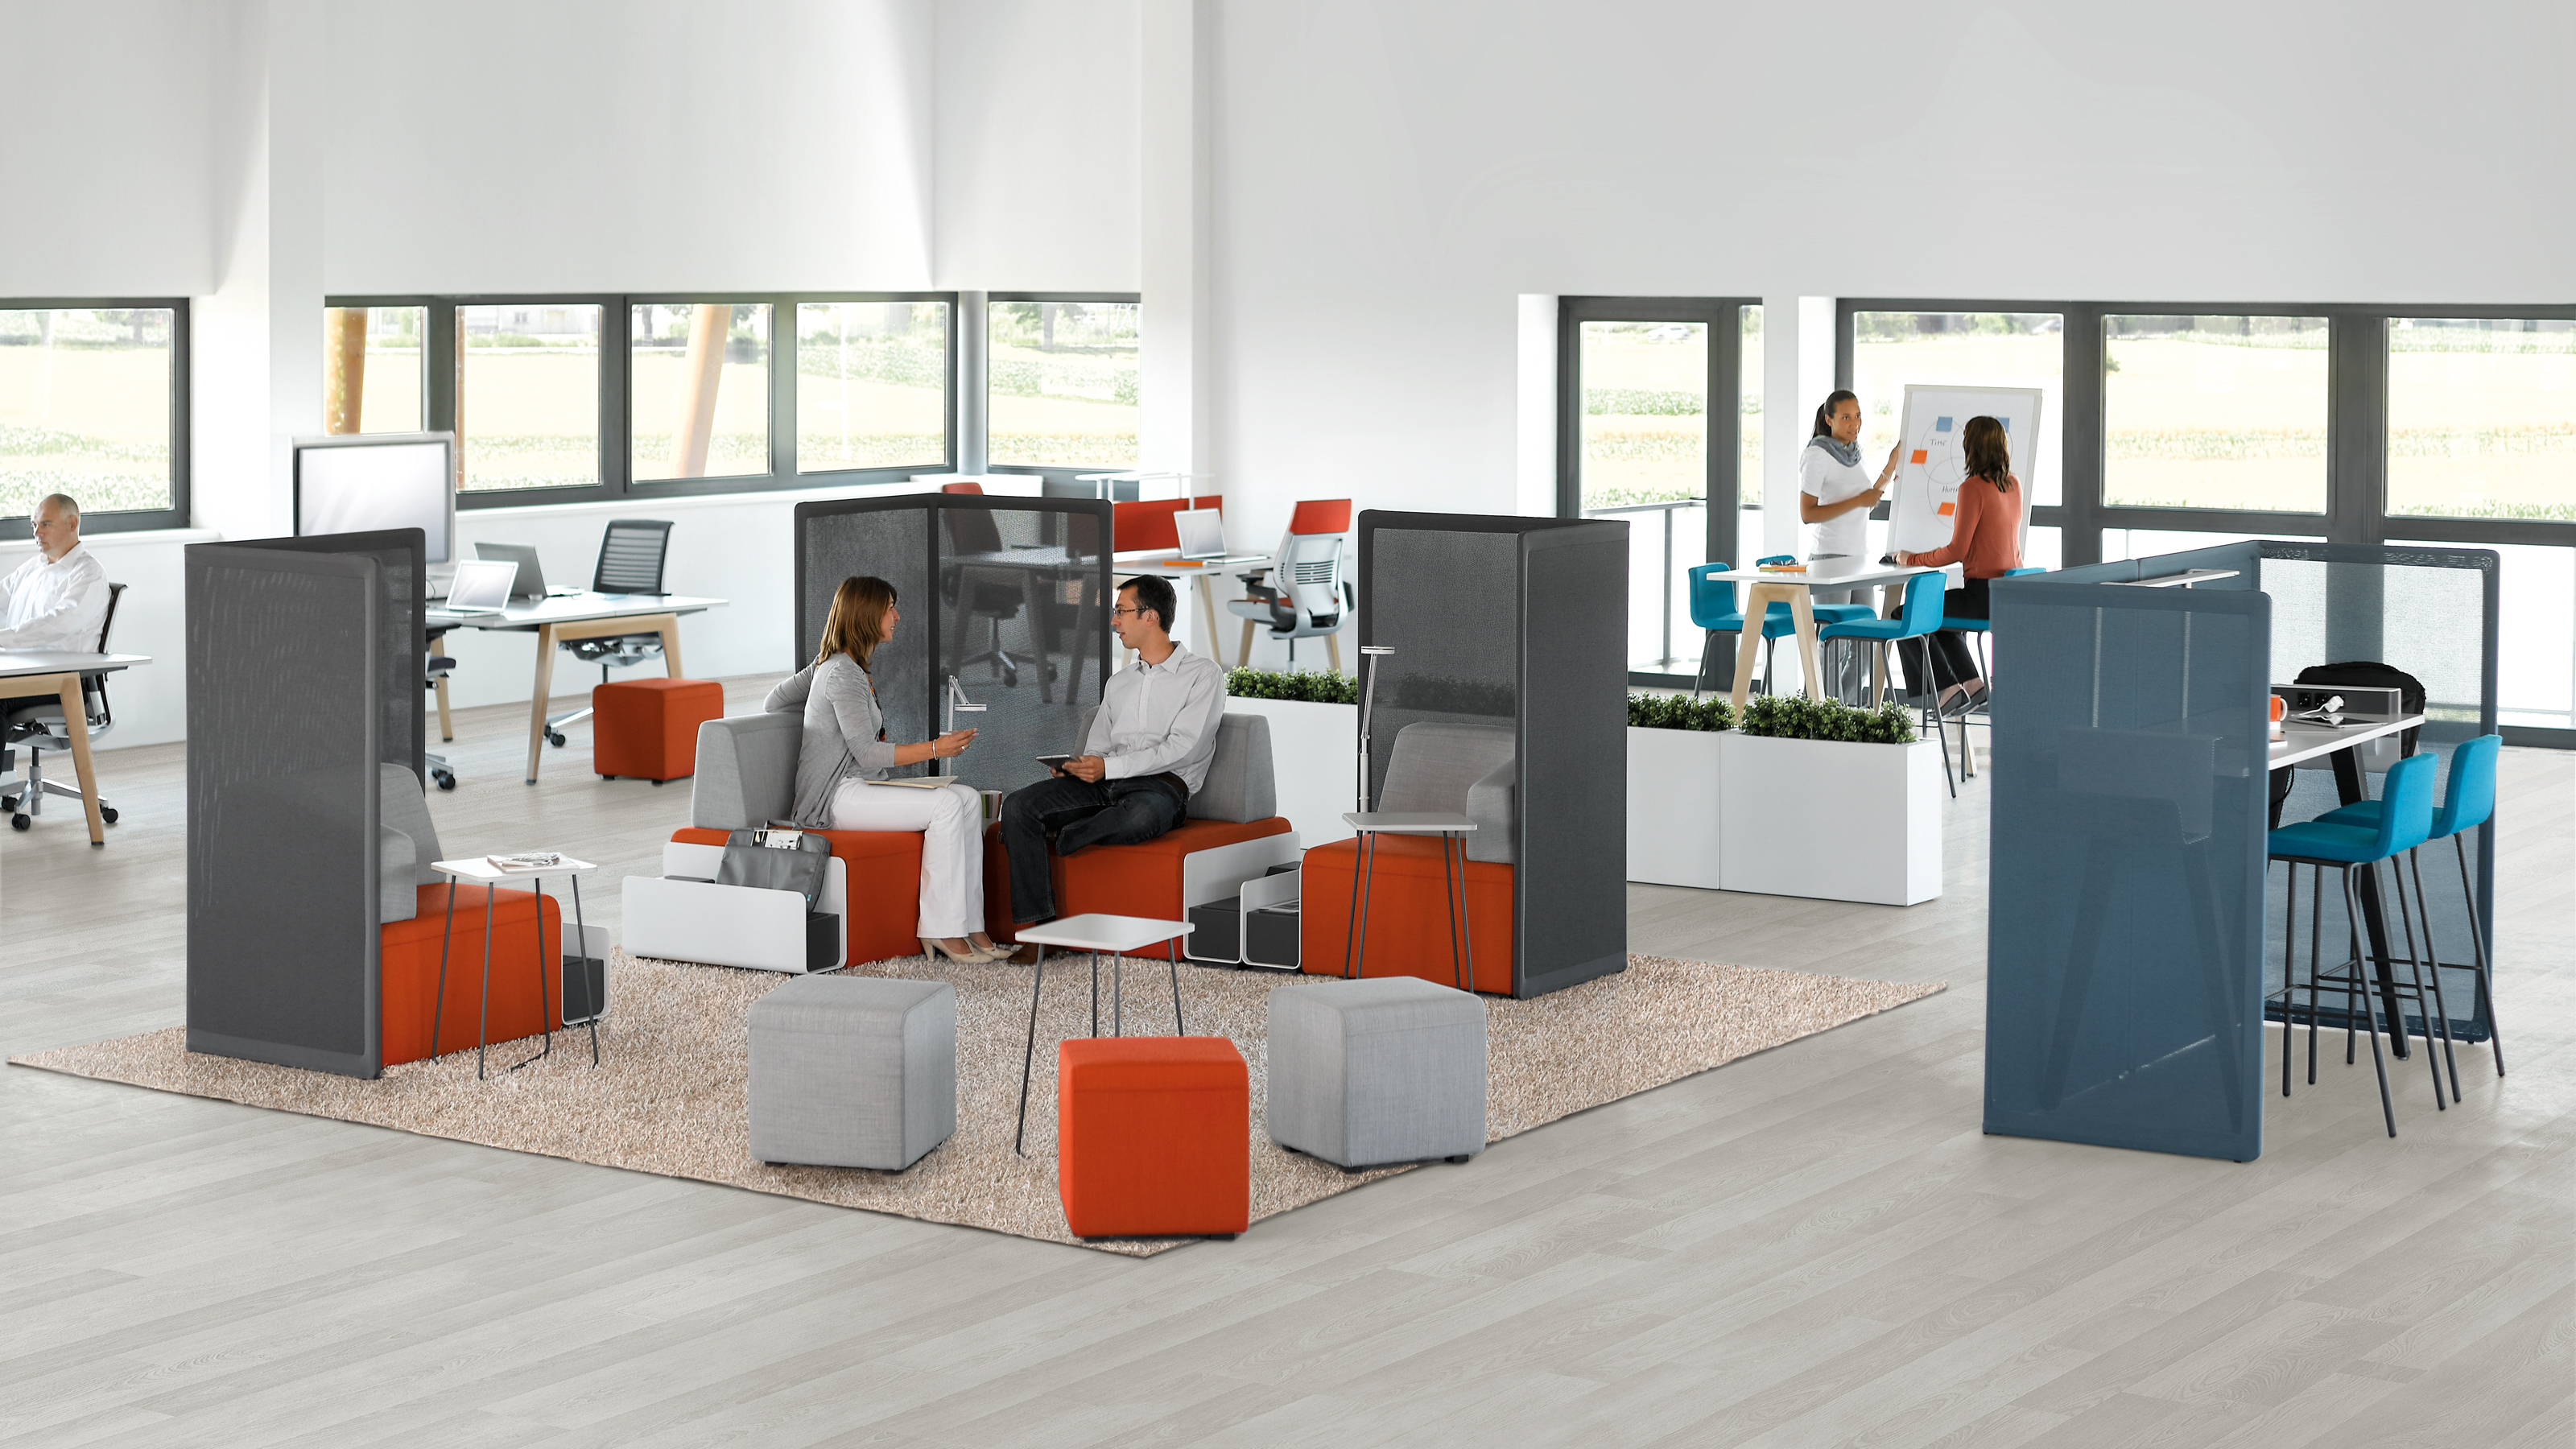 B Free Modular Desk System Soft Seating Meeting Tables